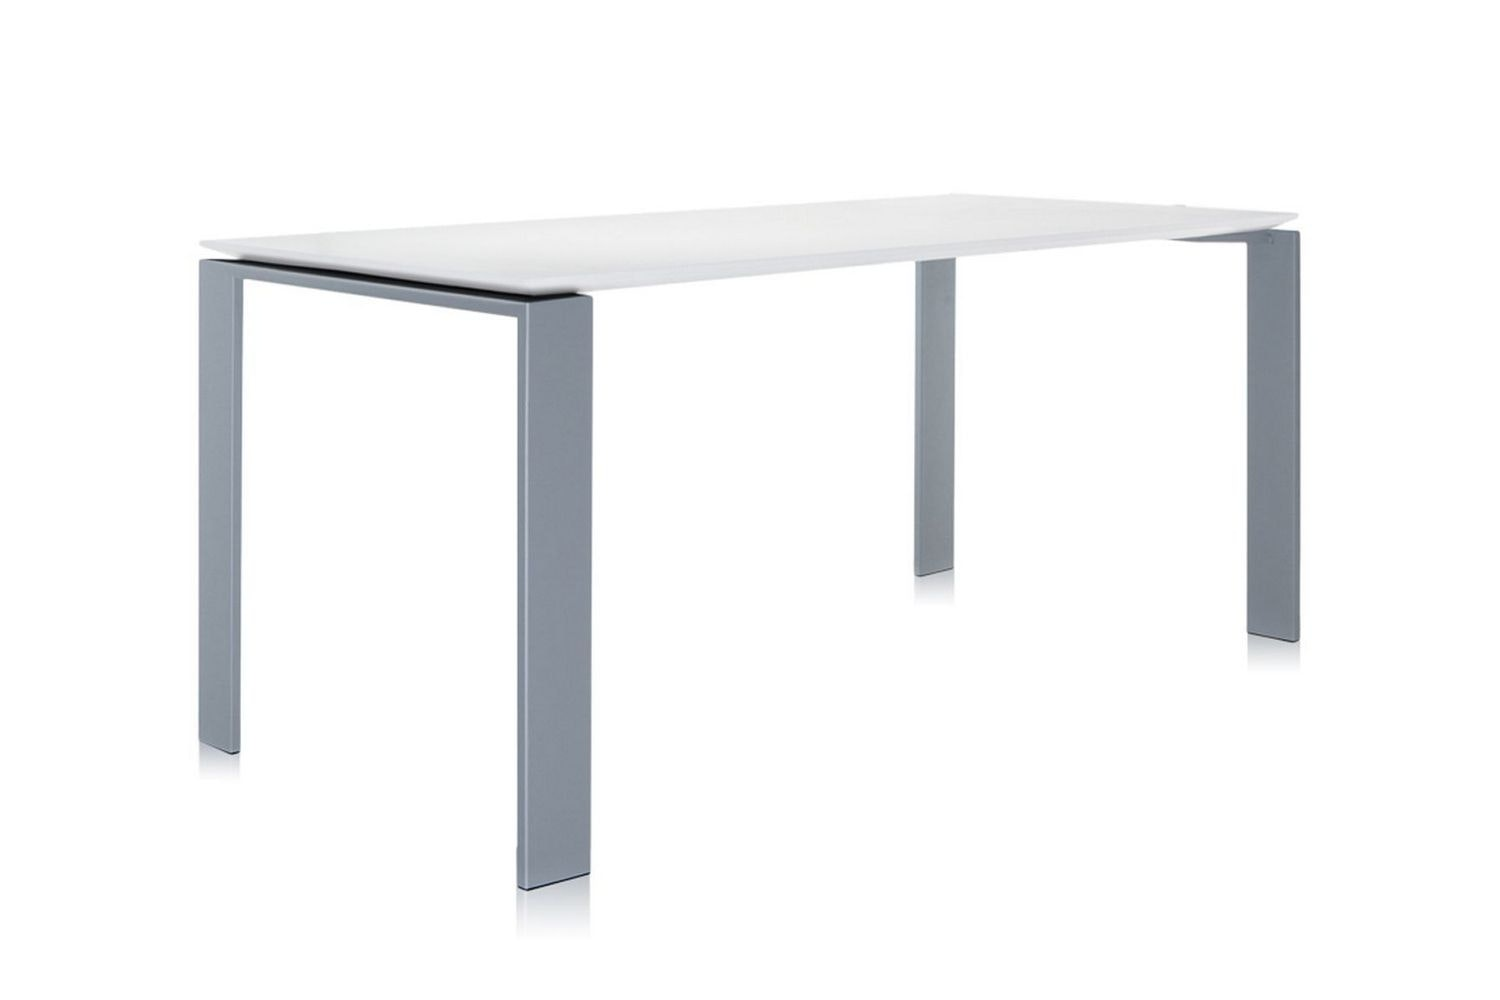 Four Medium Table by Ferruccio Laviani for Kartell